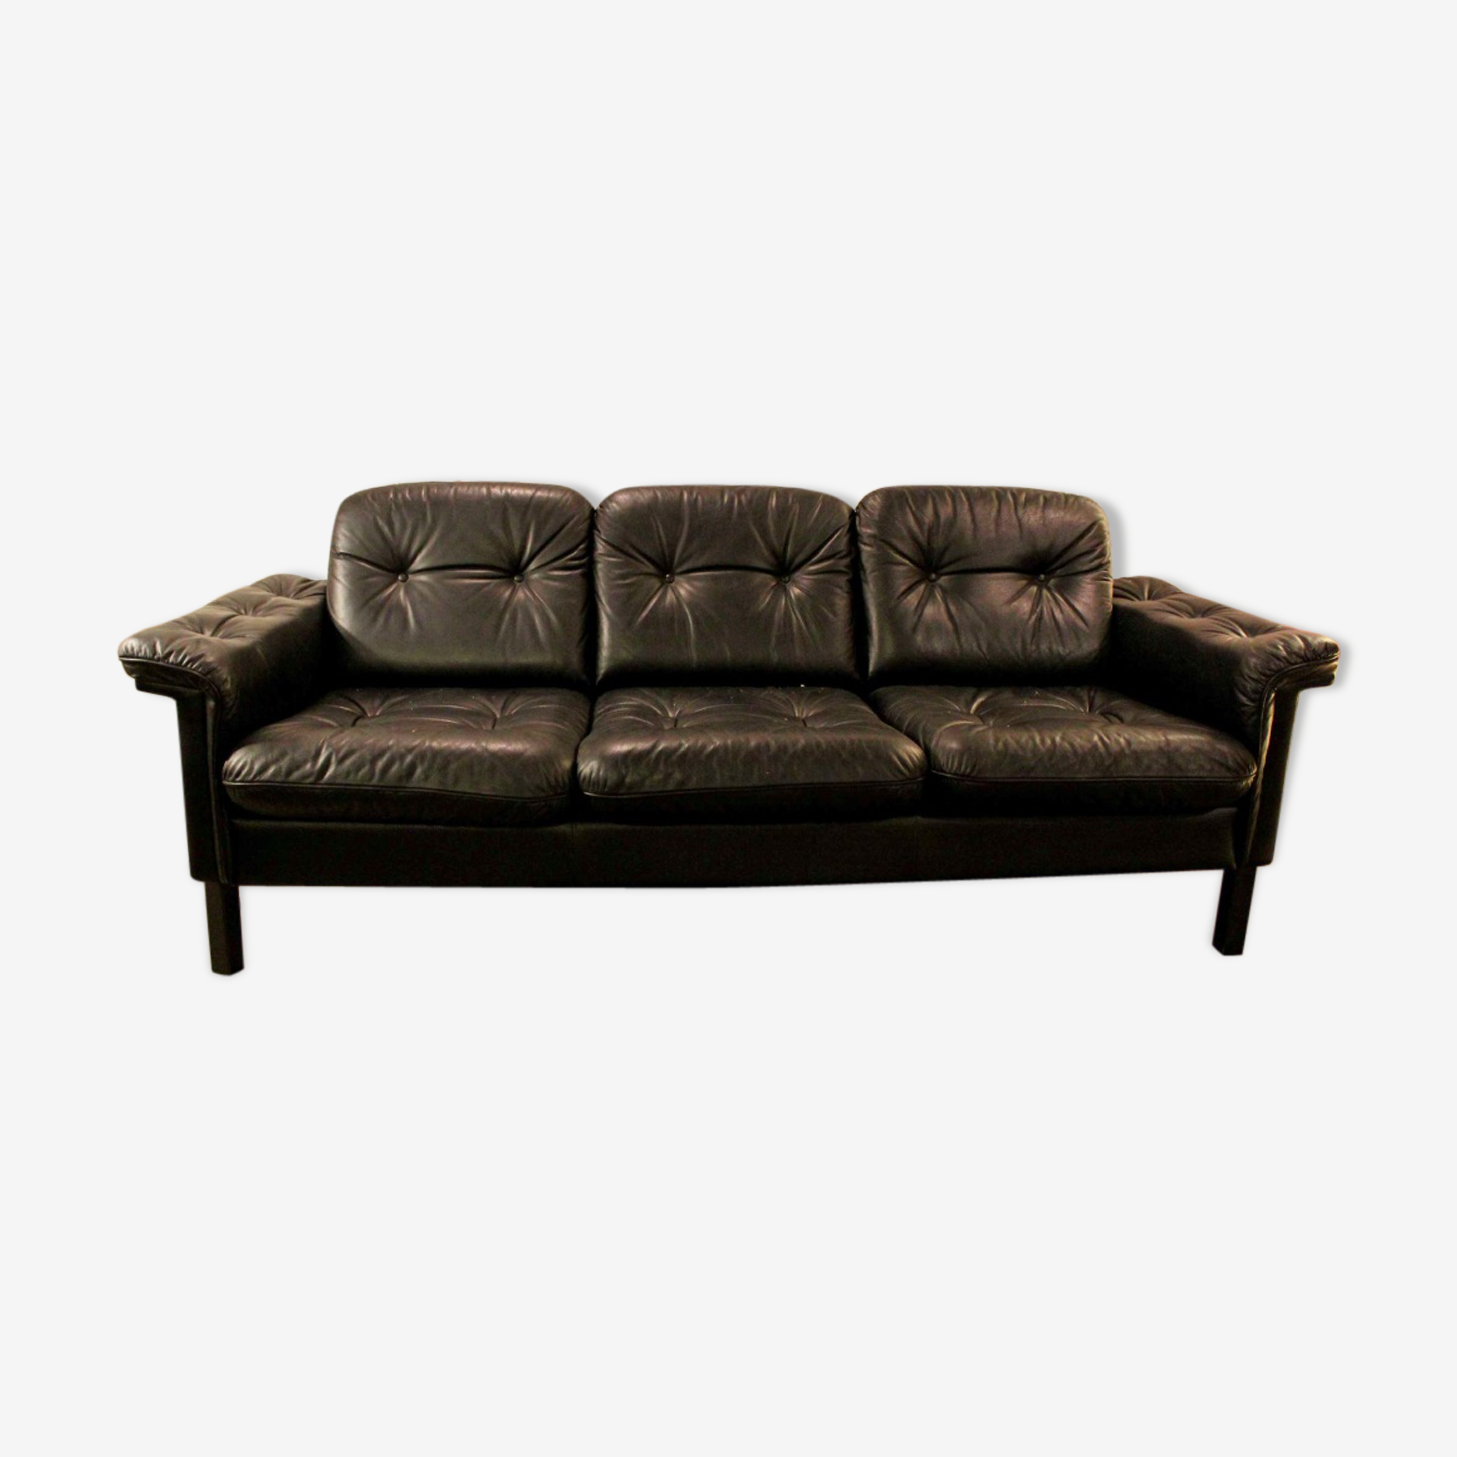 Vintage leather with 3-seater sofa since the 1970s.